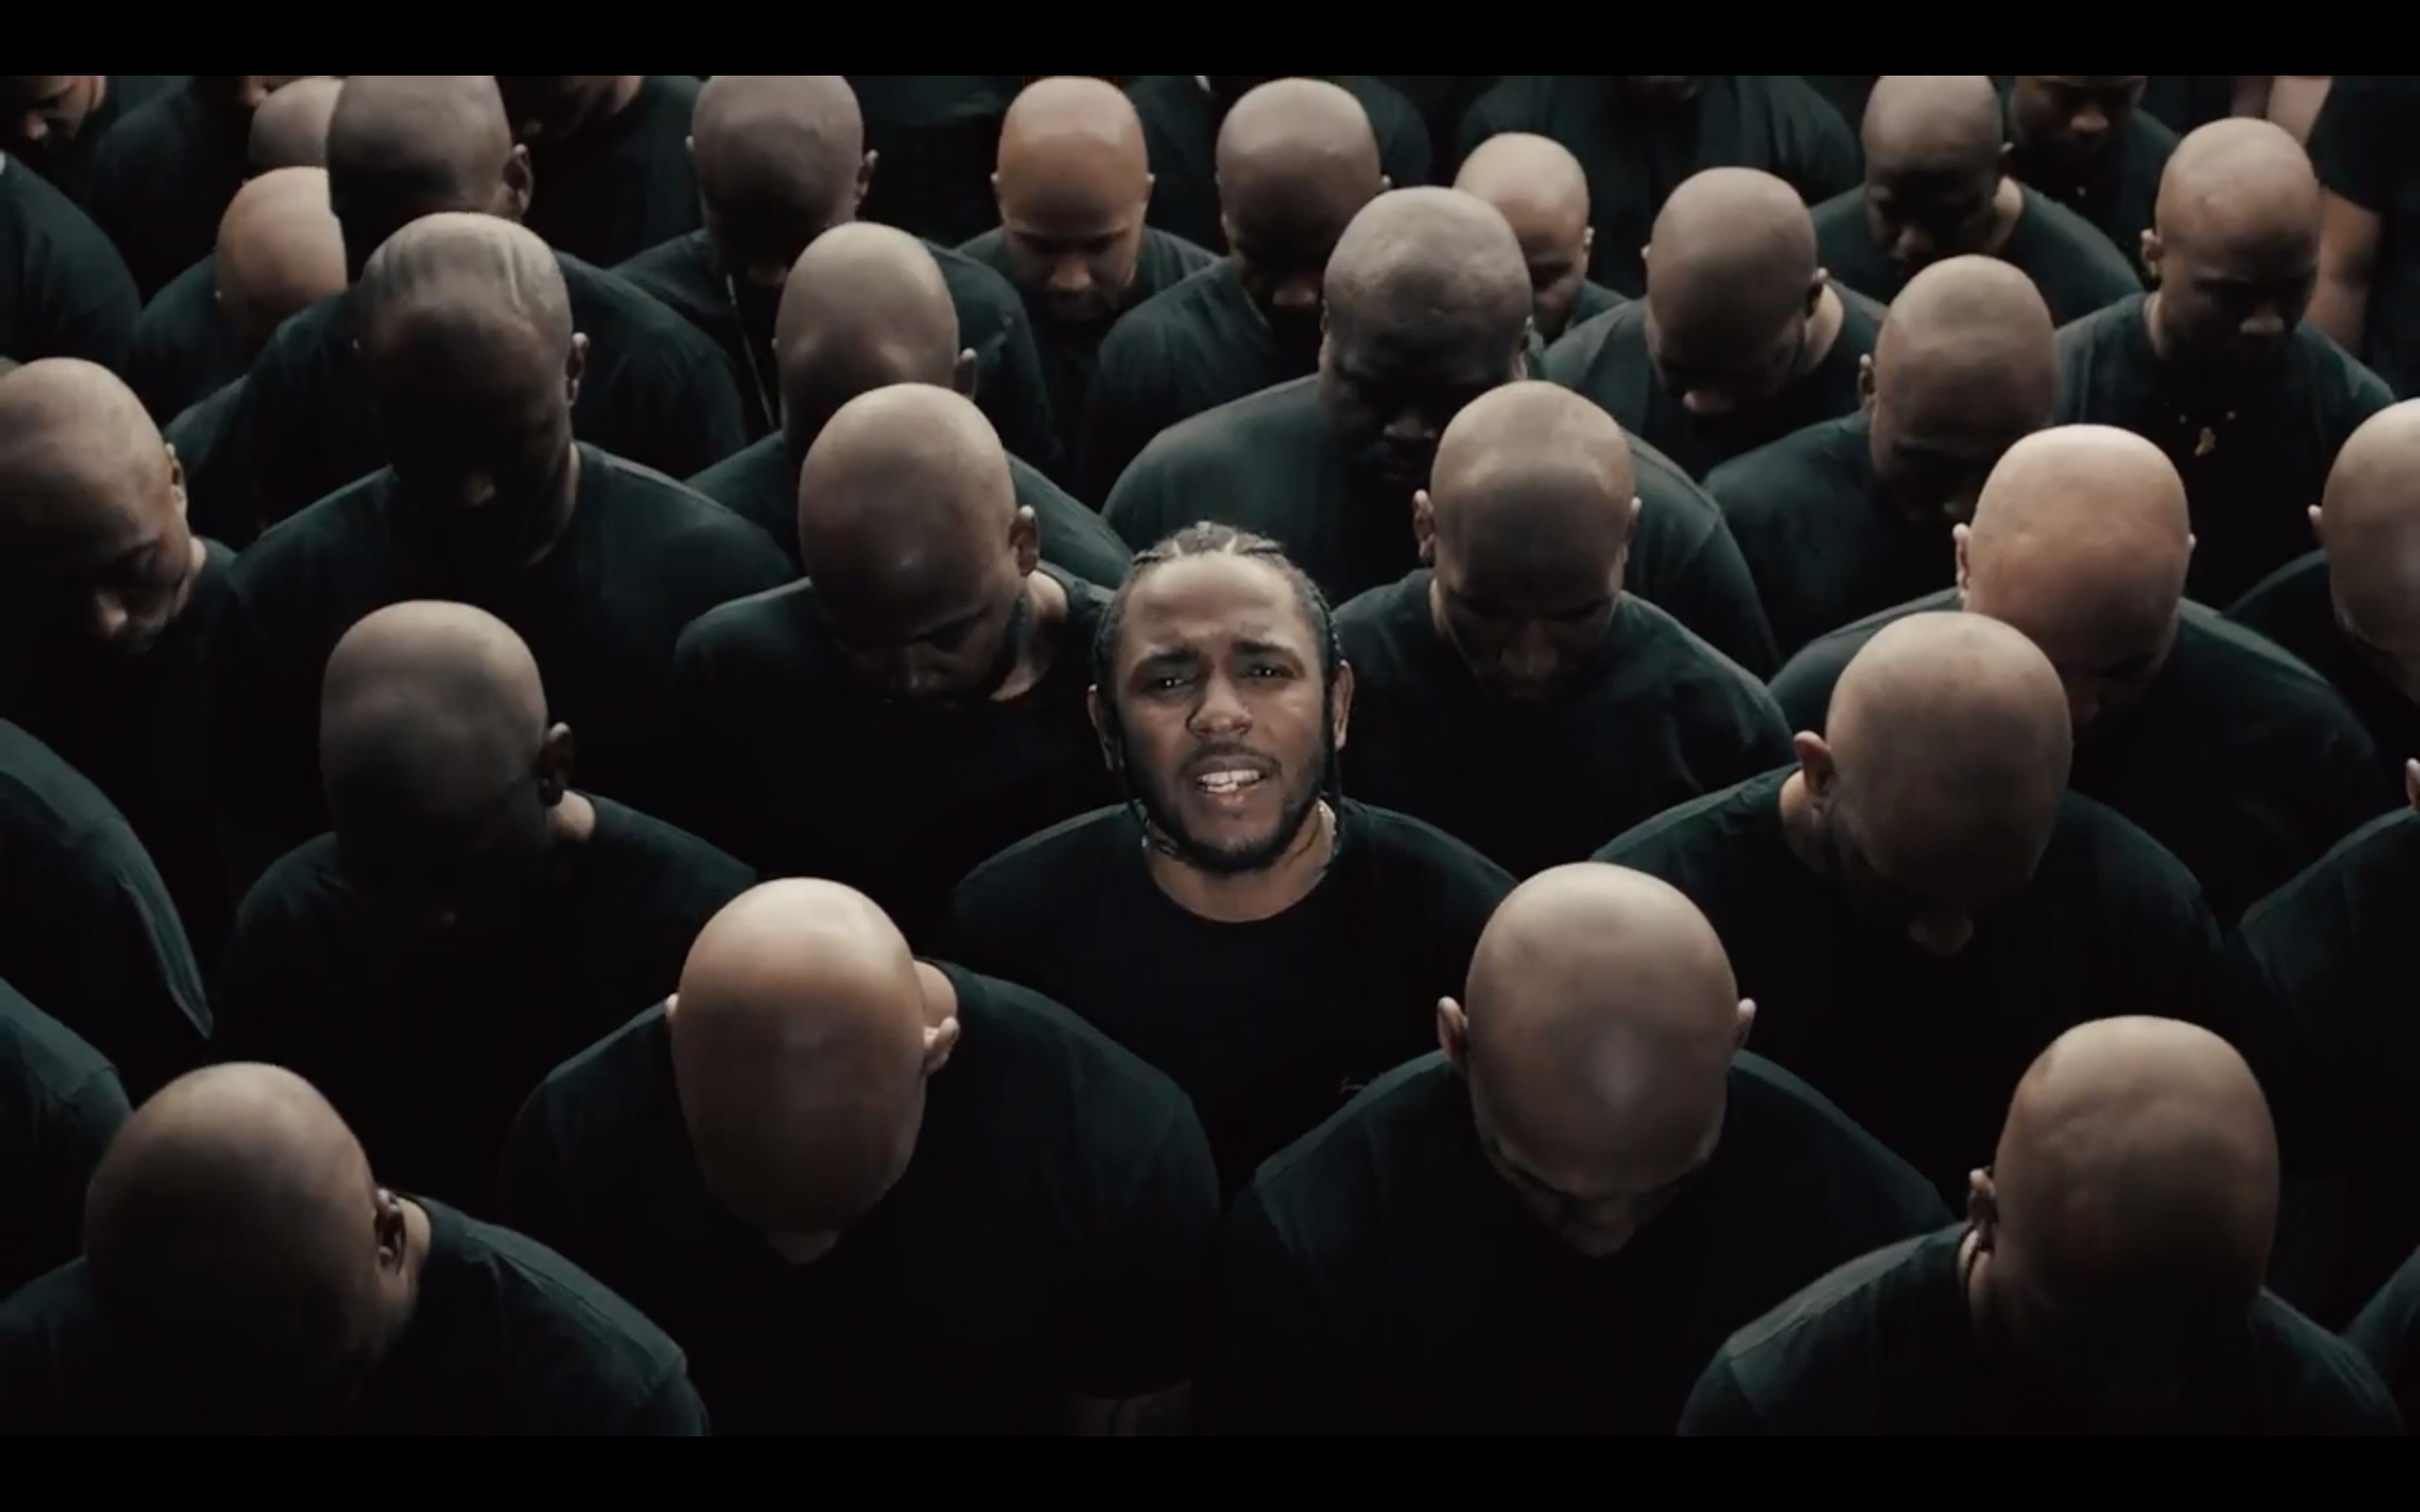 humble kendrick lamar composition screenshot10metropolis movie.jpg